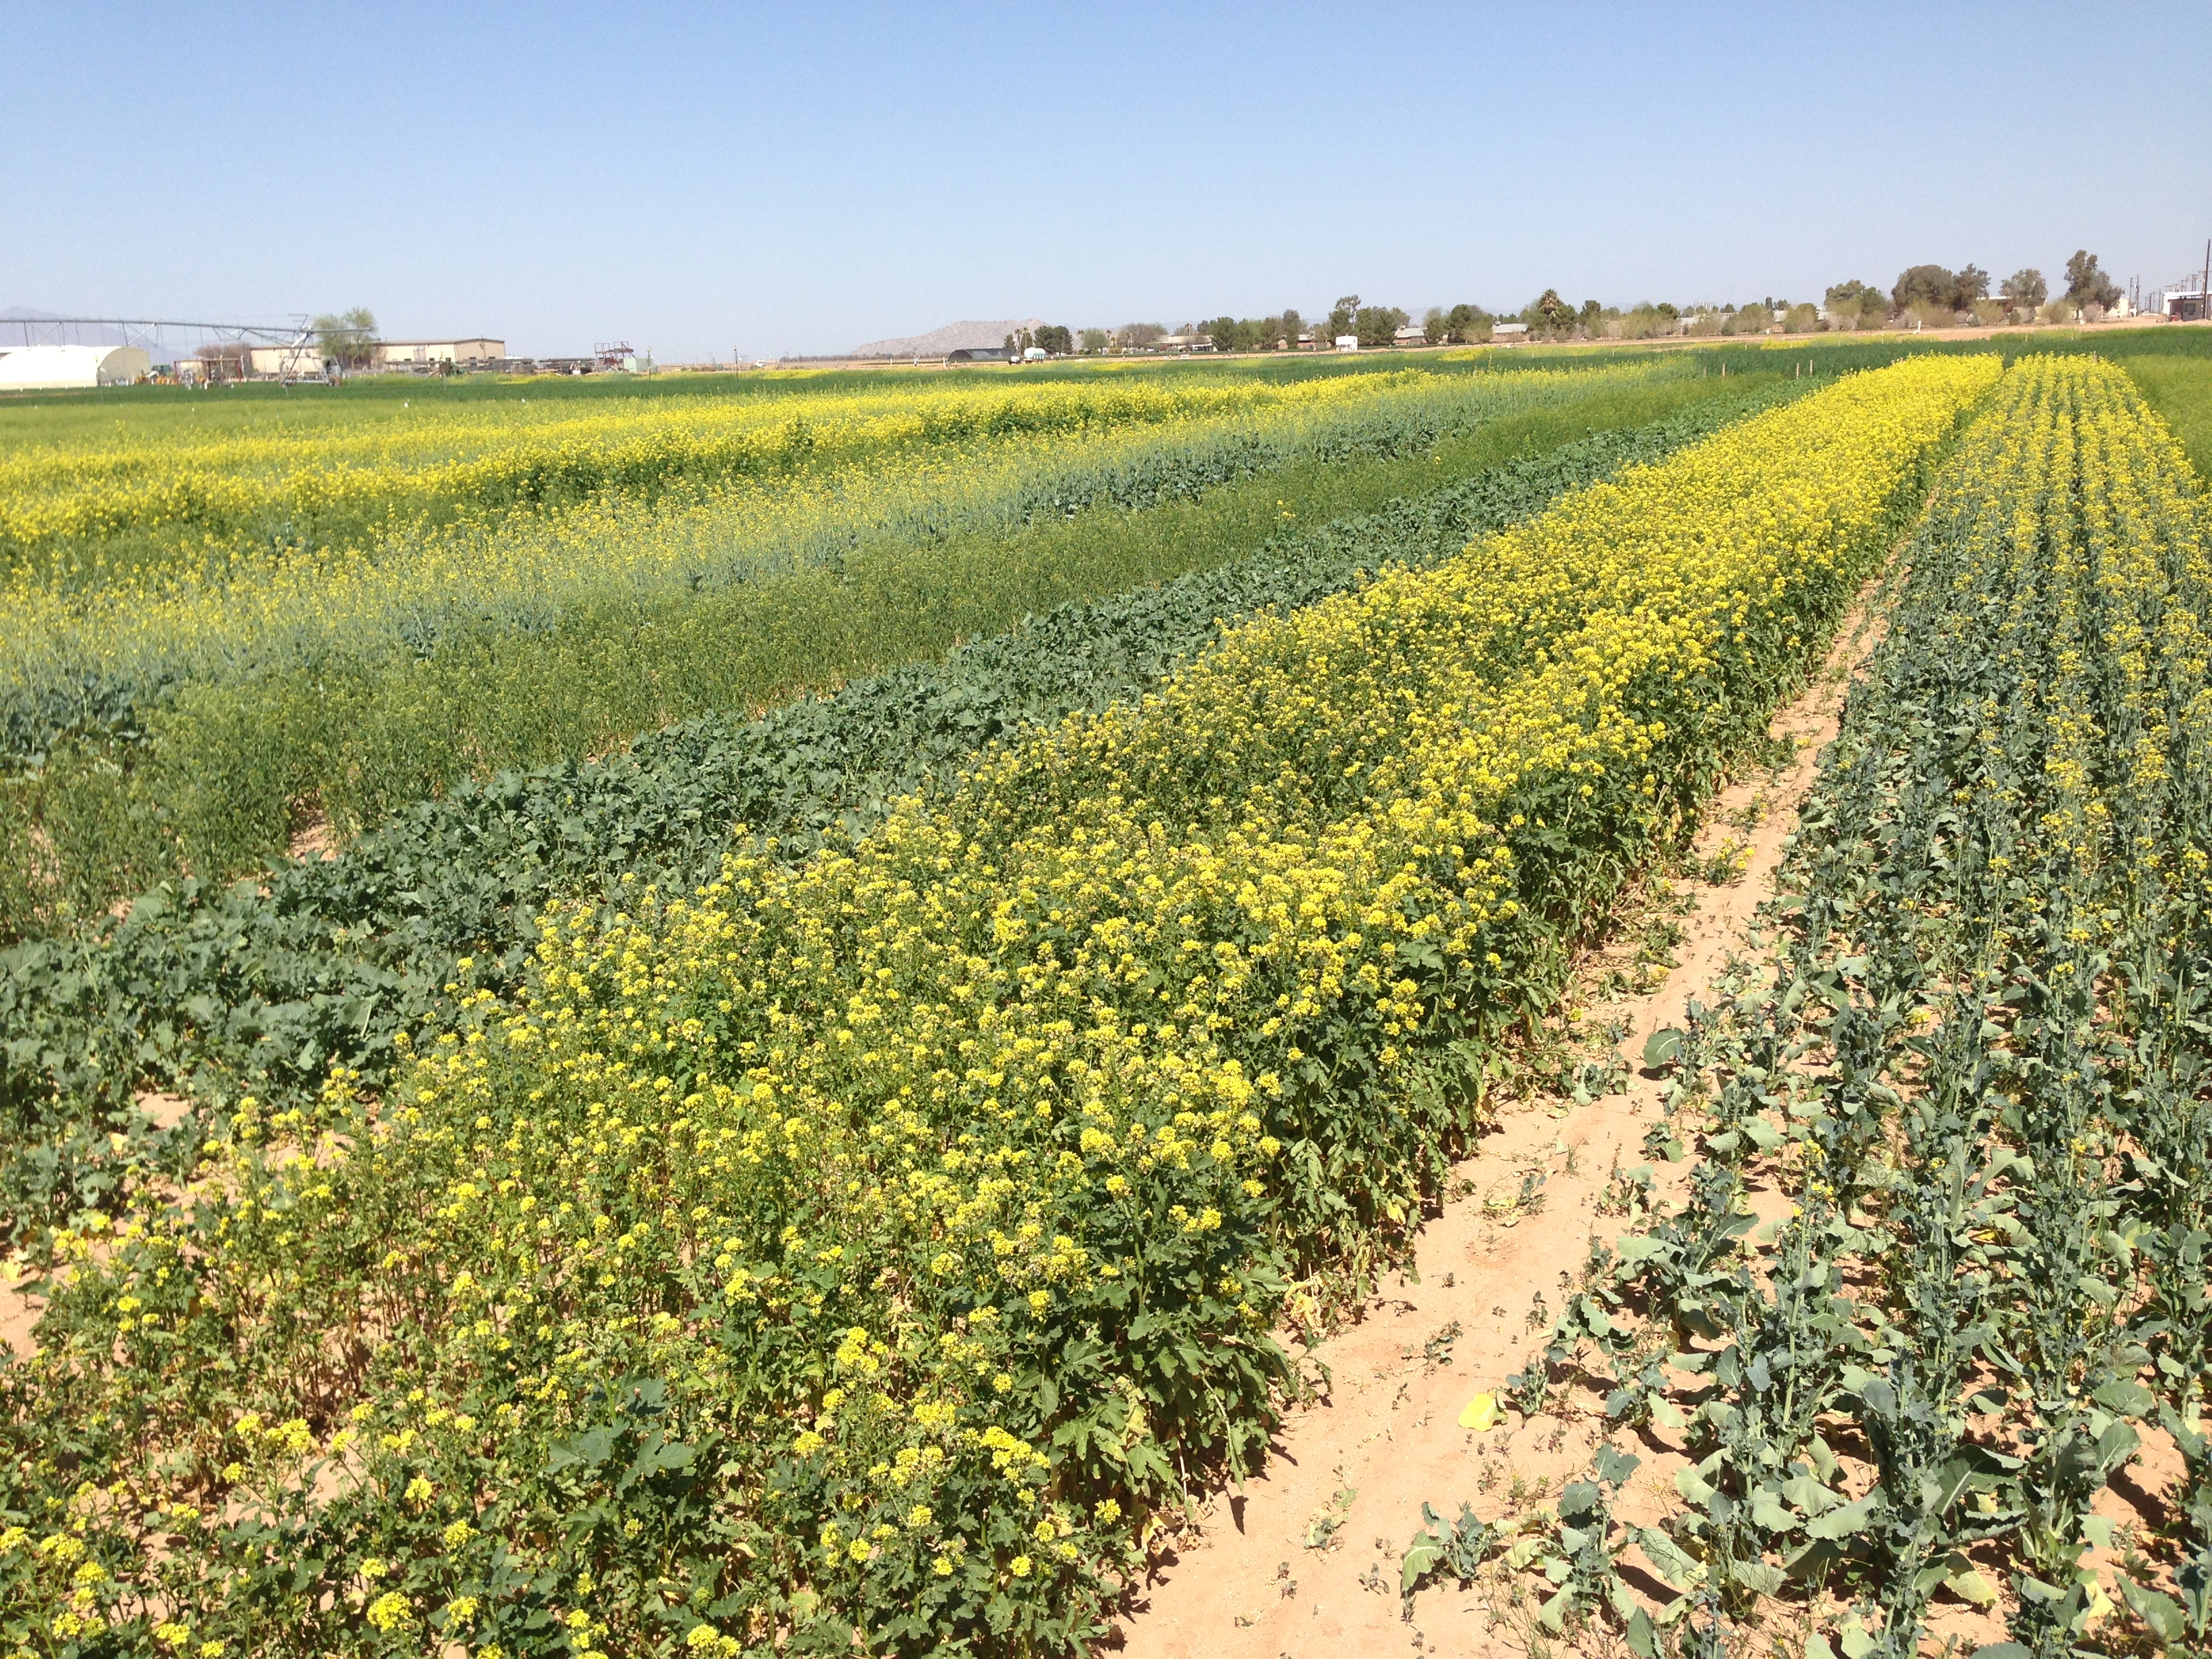 Science Could Make Canola Oil More Nutritious And Broccoli More Tasty